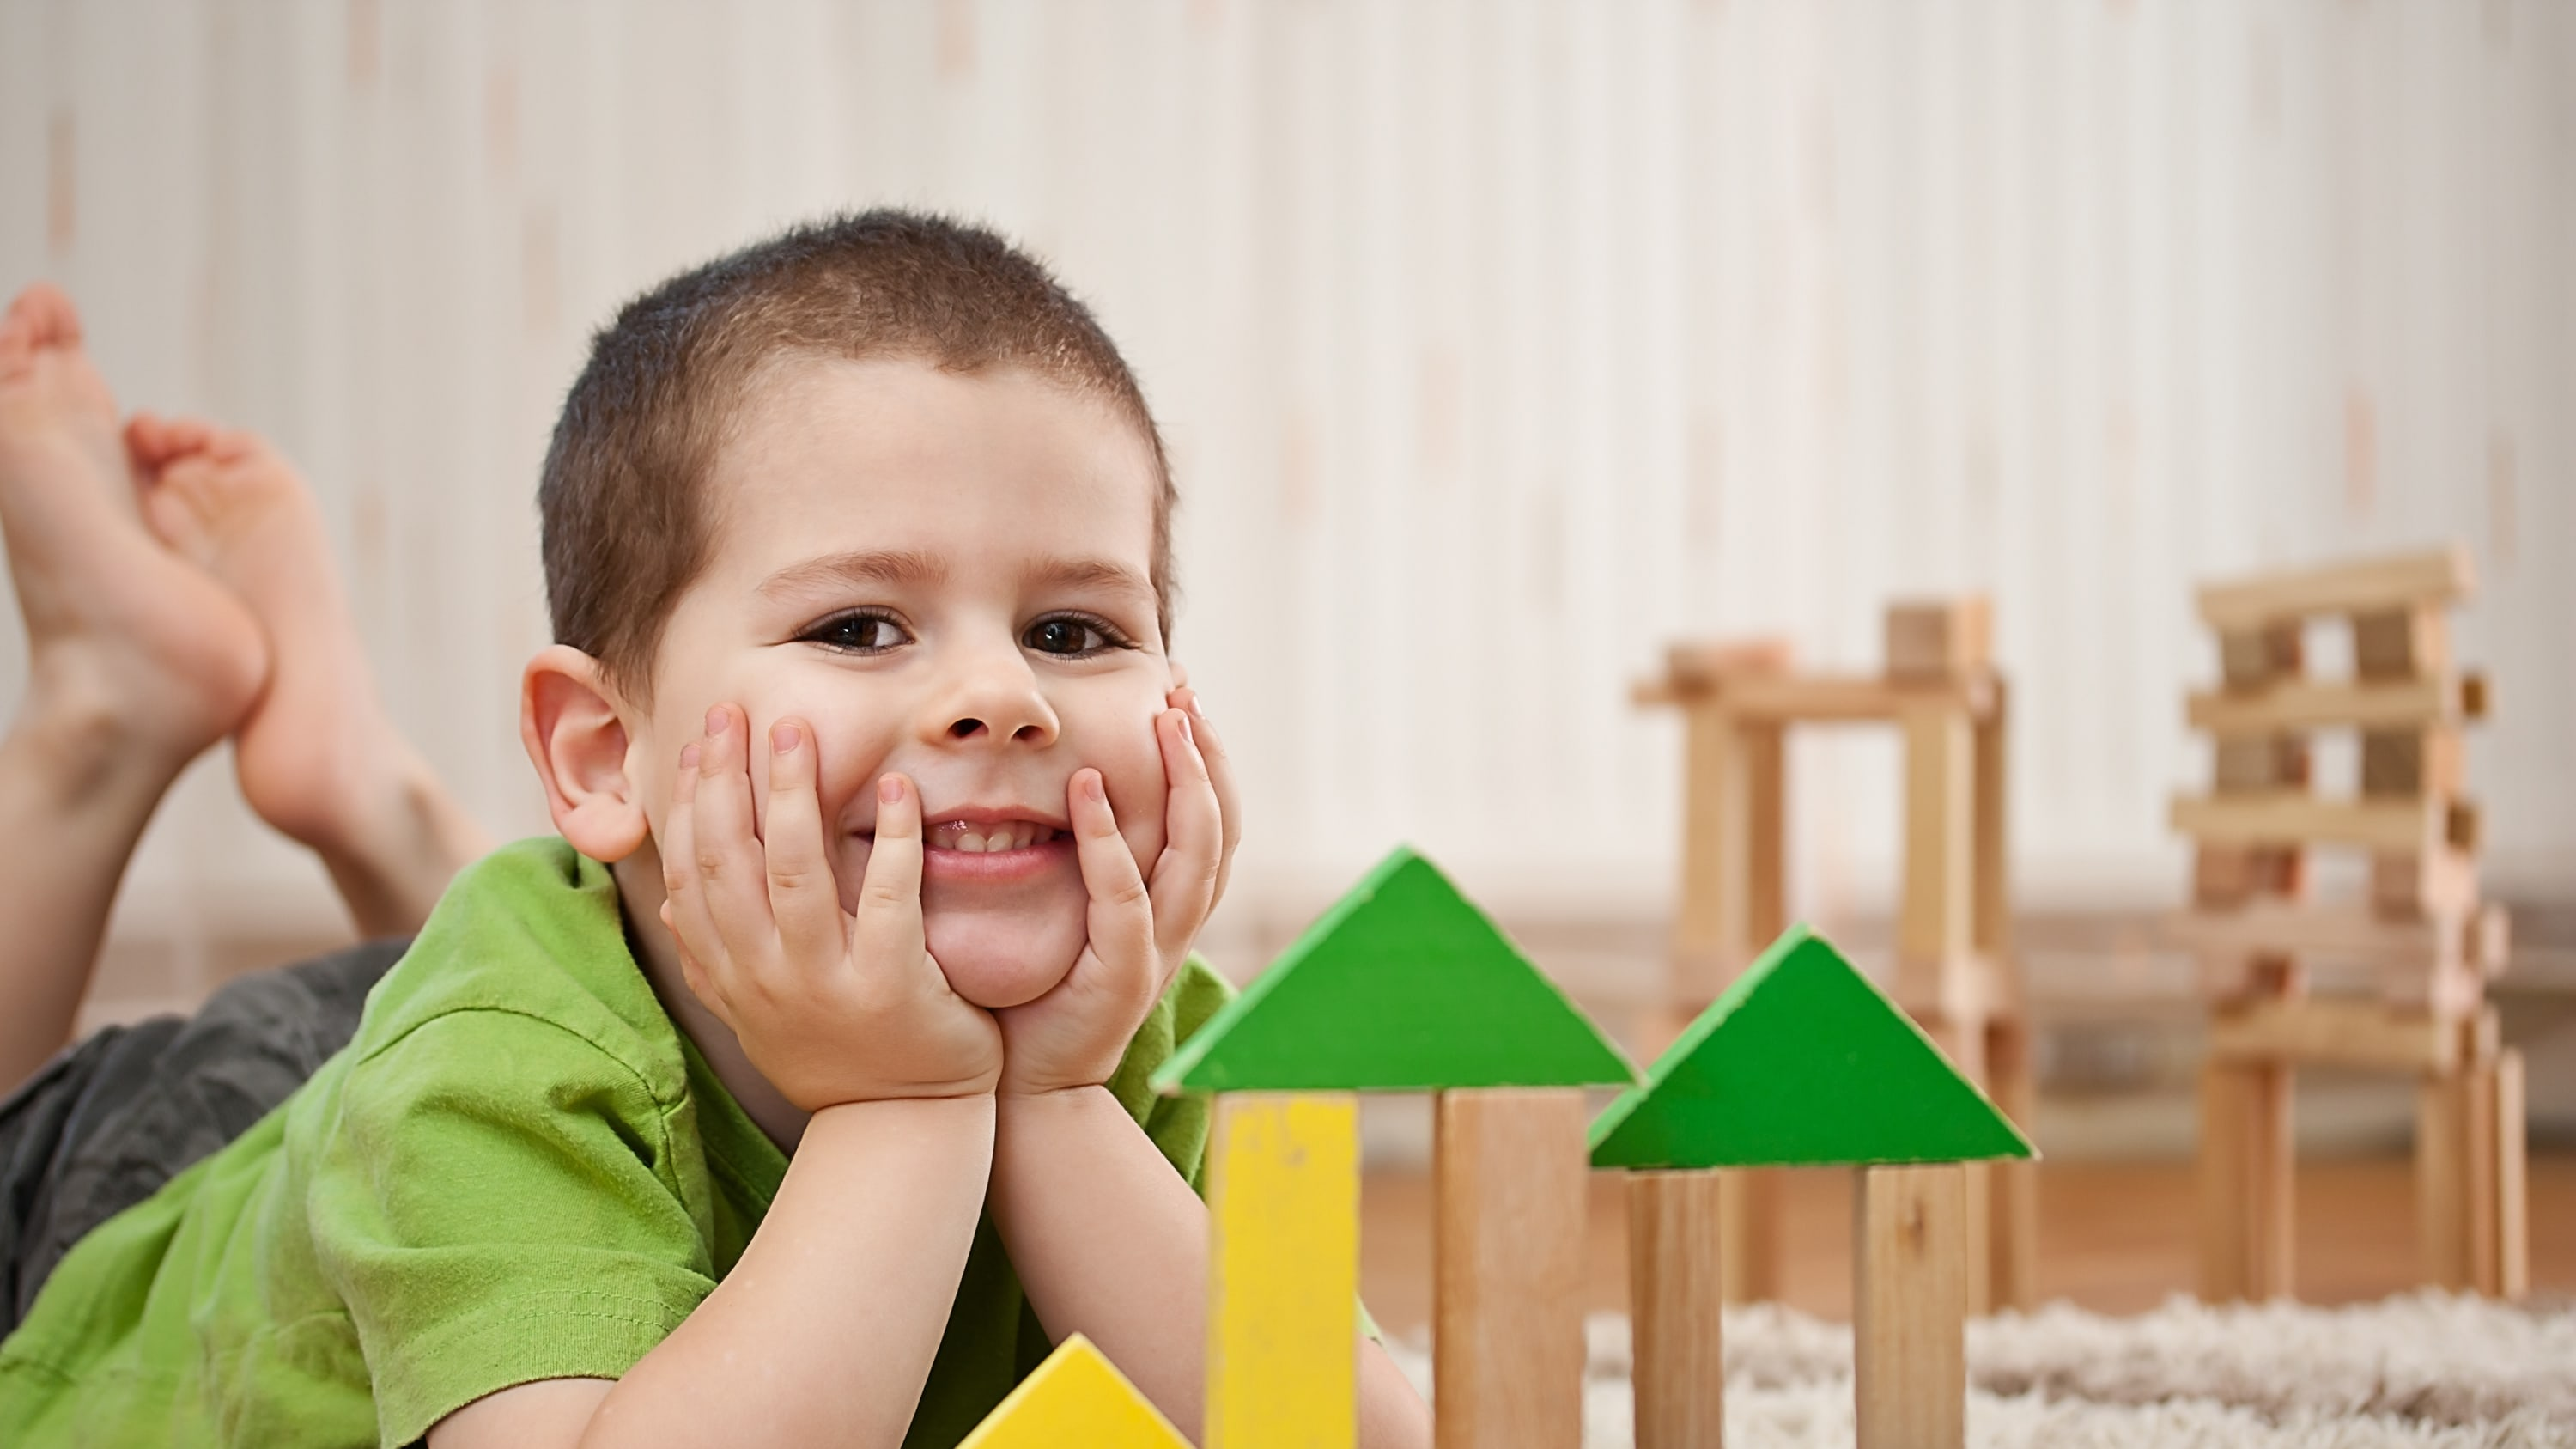 a young child sits in front of his wooden block tower, possibly waiting for an appointment to discuss developmental delay